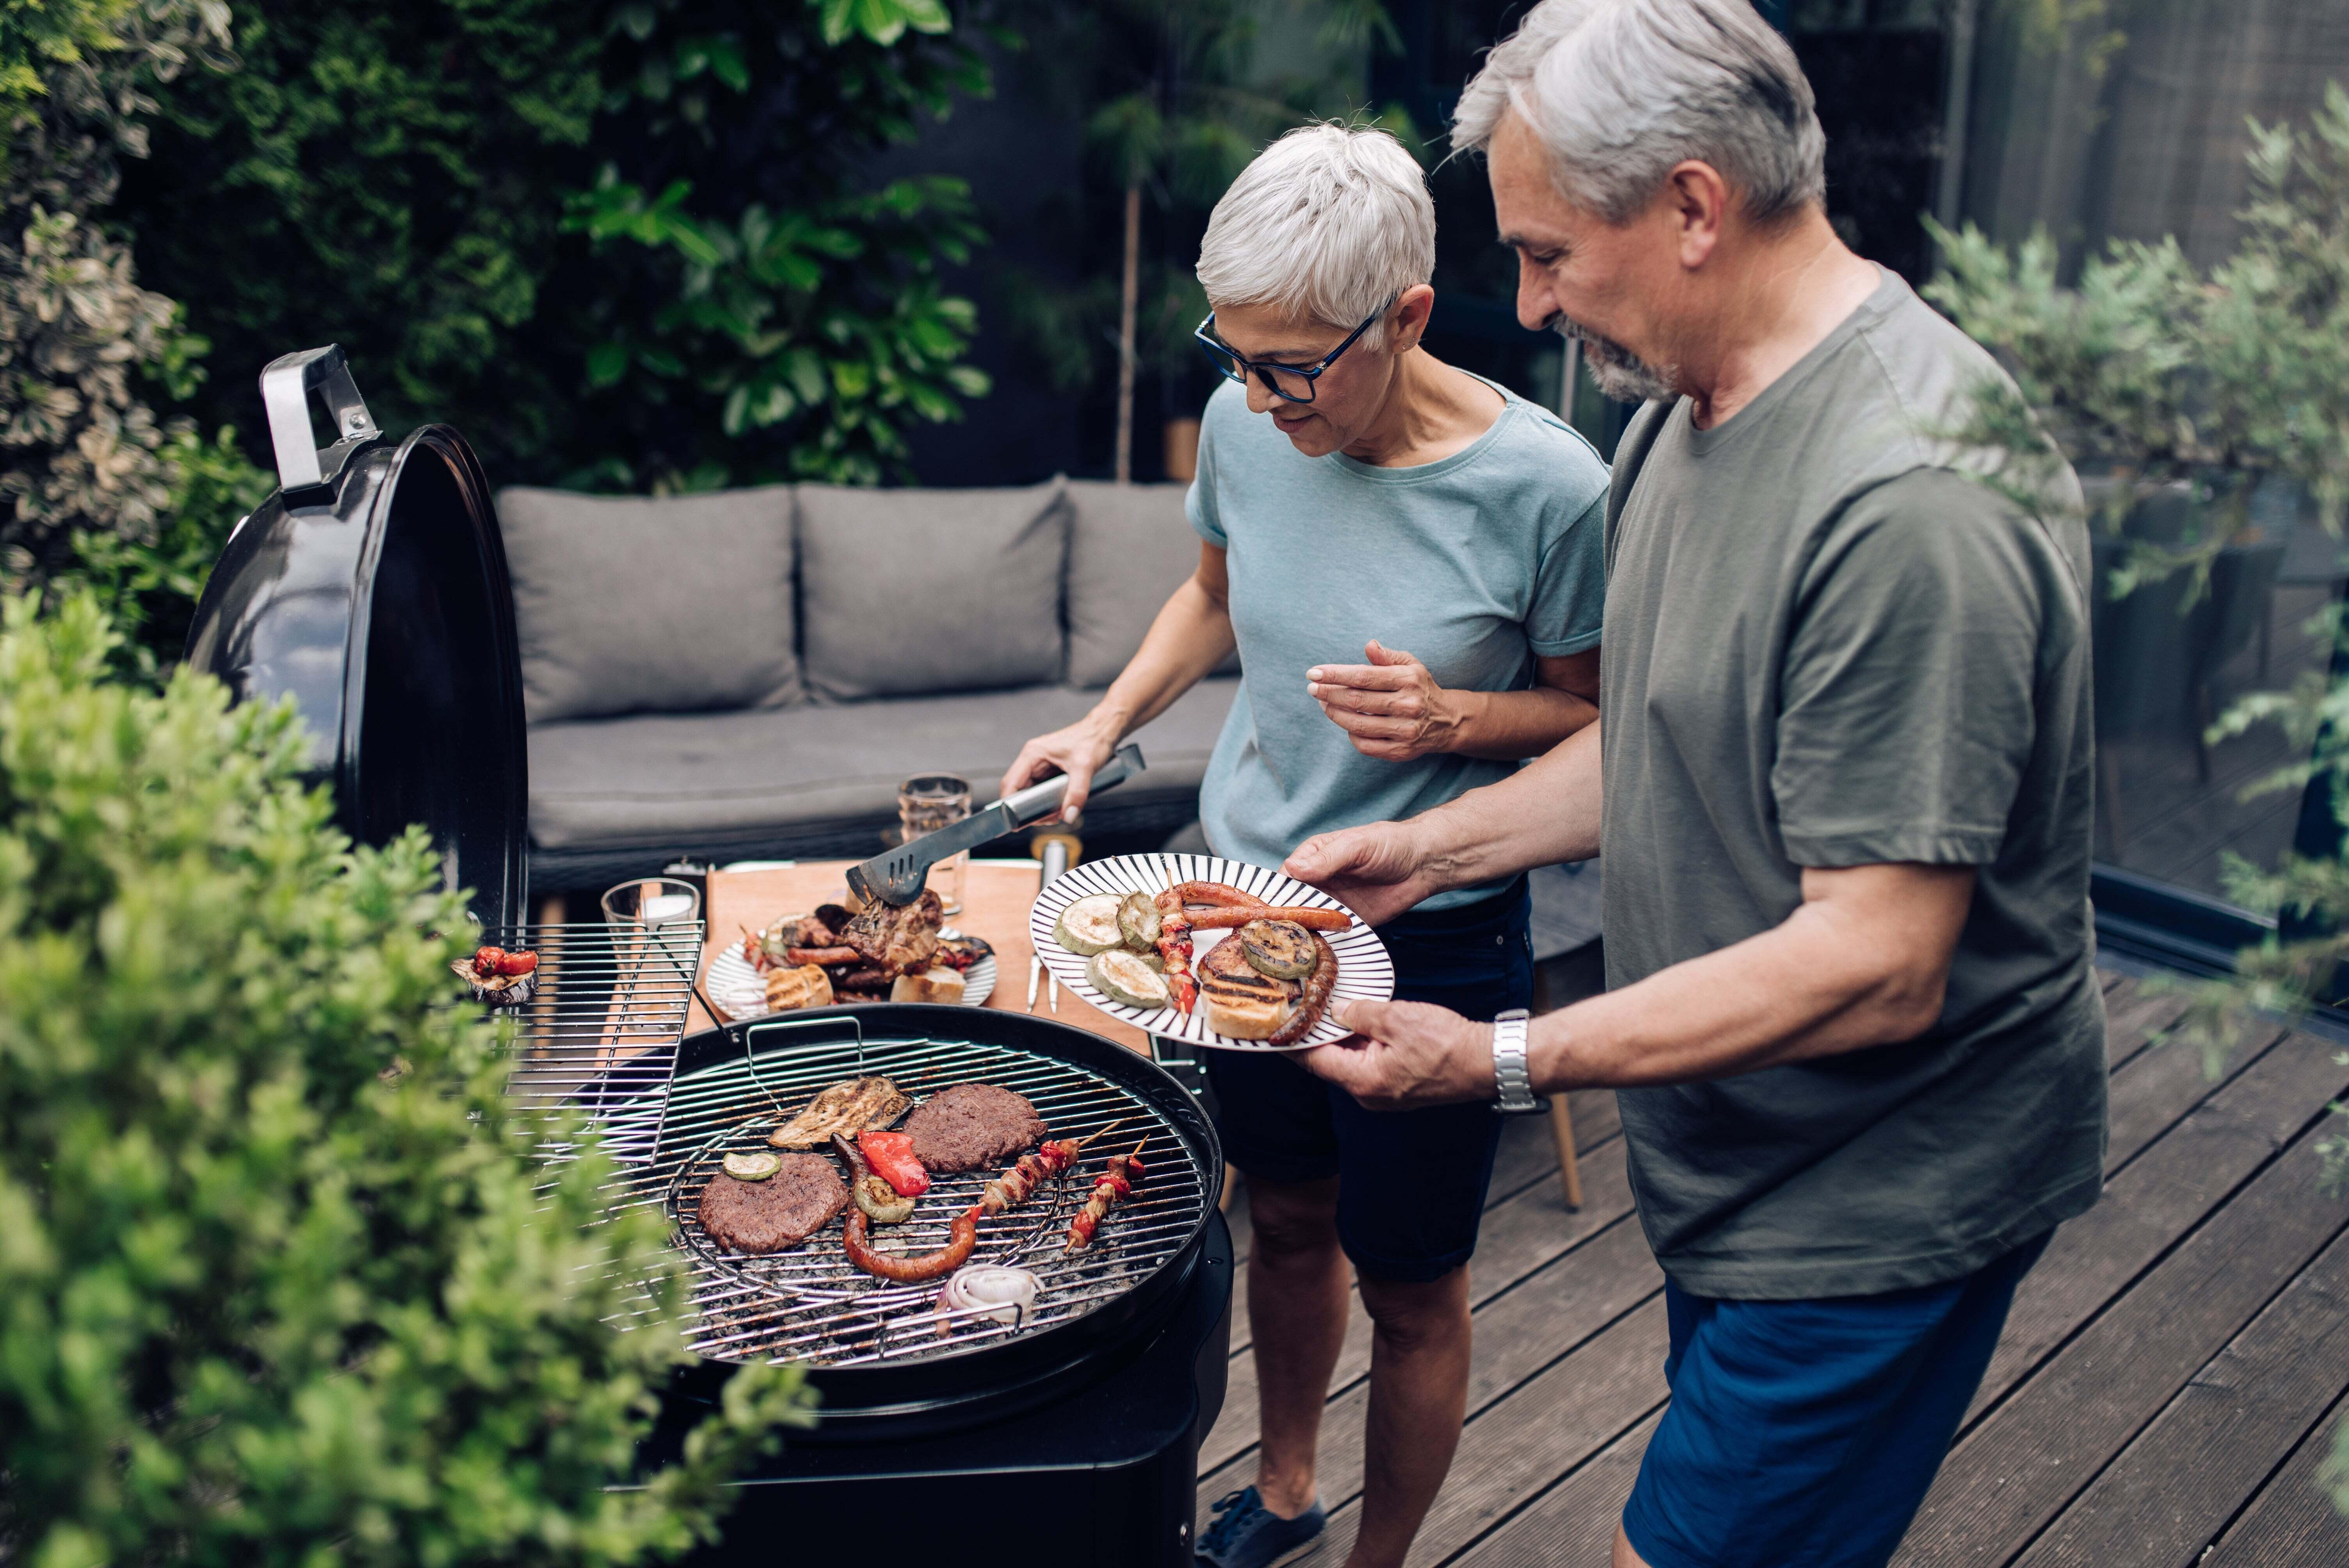 An older couple grilling on their patio outdoors